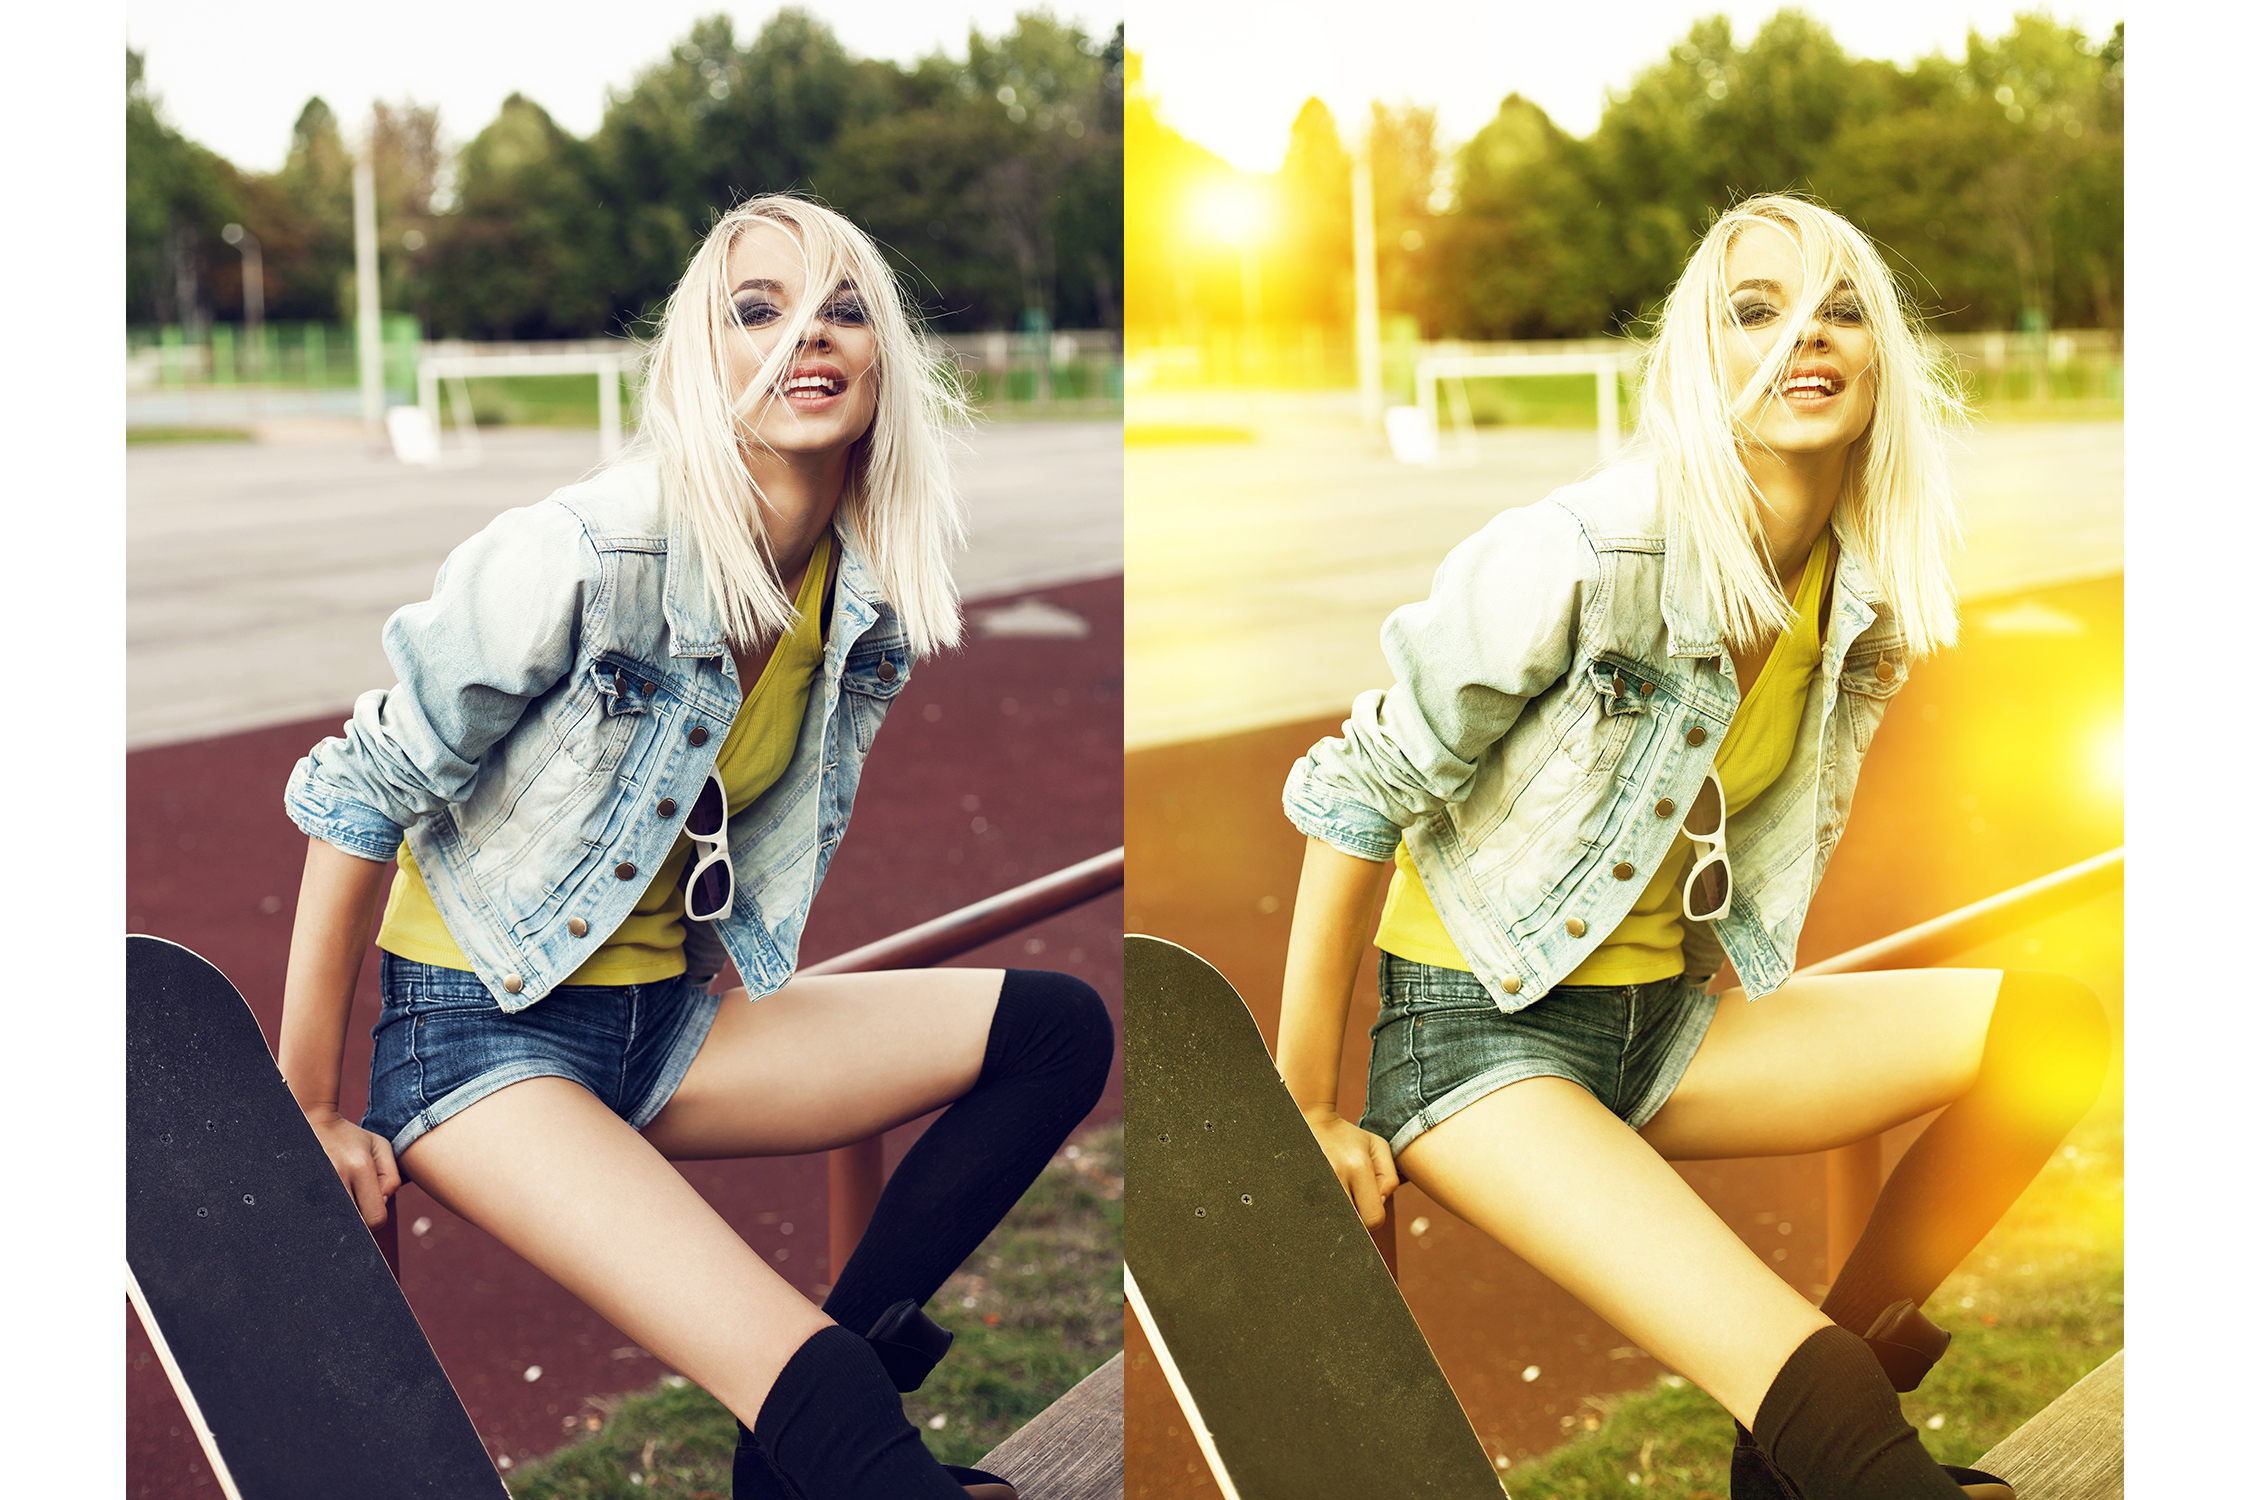 122 Light Leaks Photoshop Actions Collection (Action for photoshop CS5,CS6,CC) example image 3